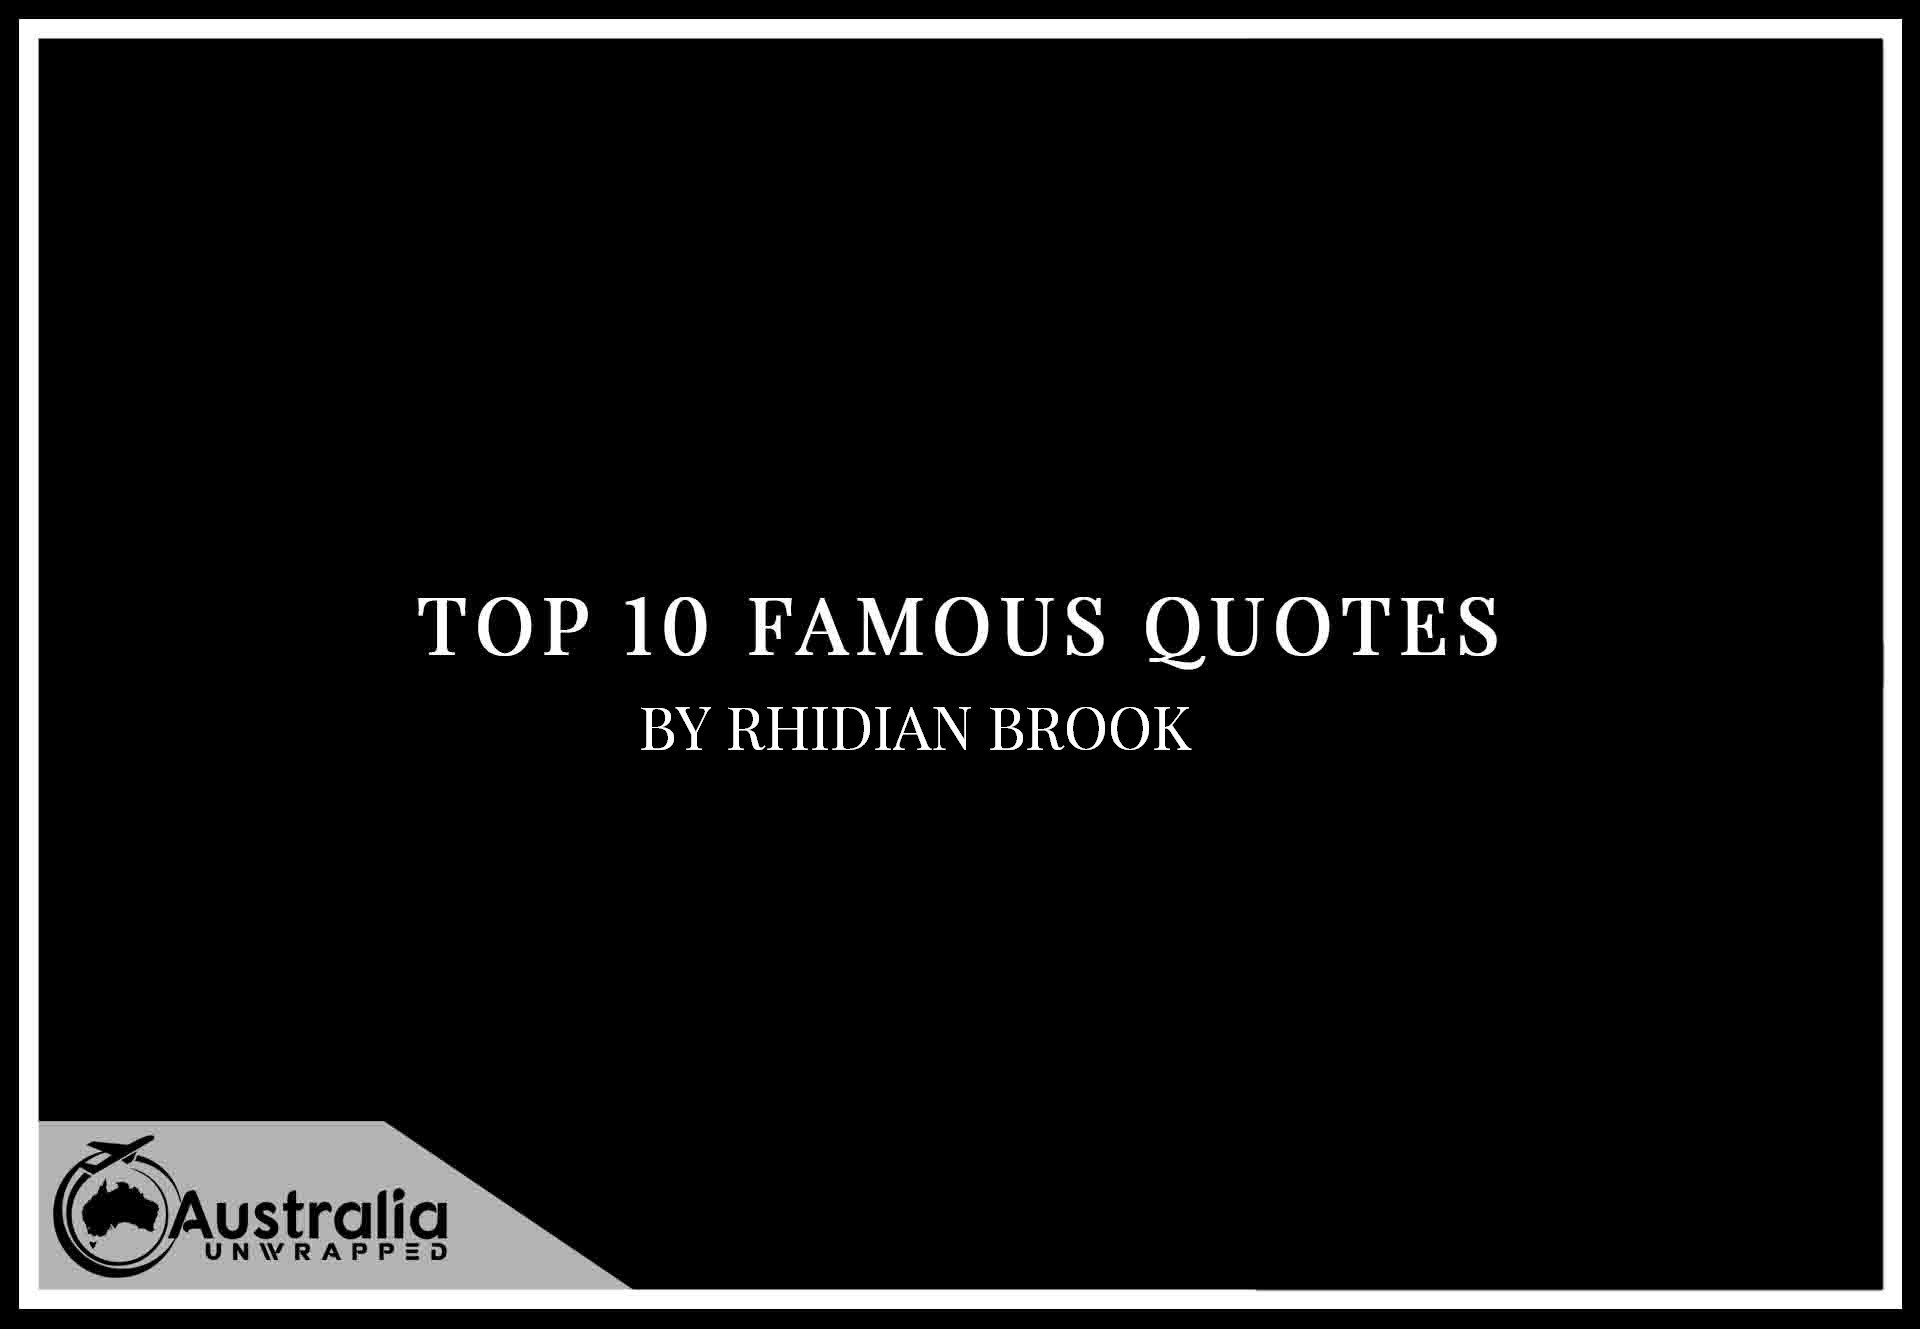 Top 10 Famous Quotes by Author Rhidian Brook